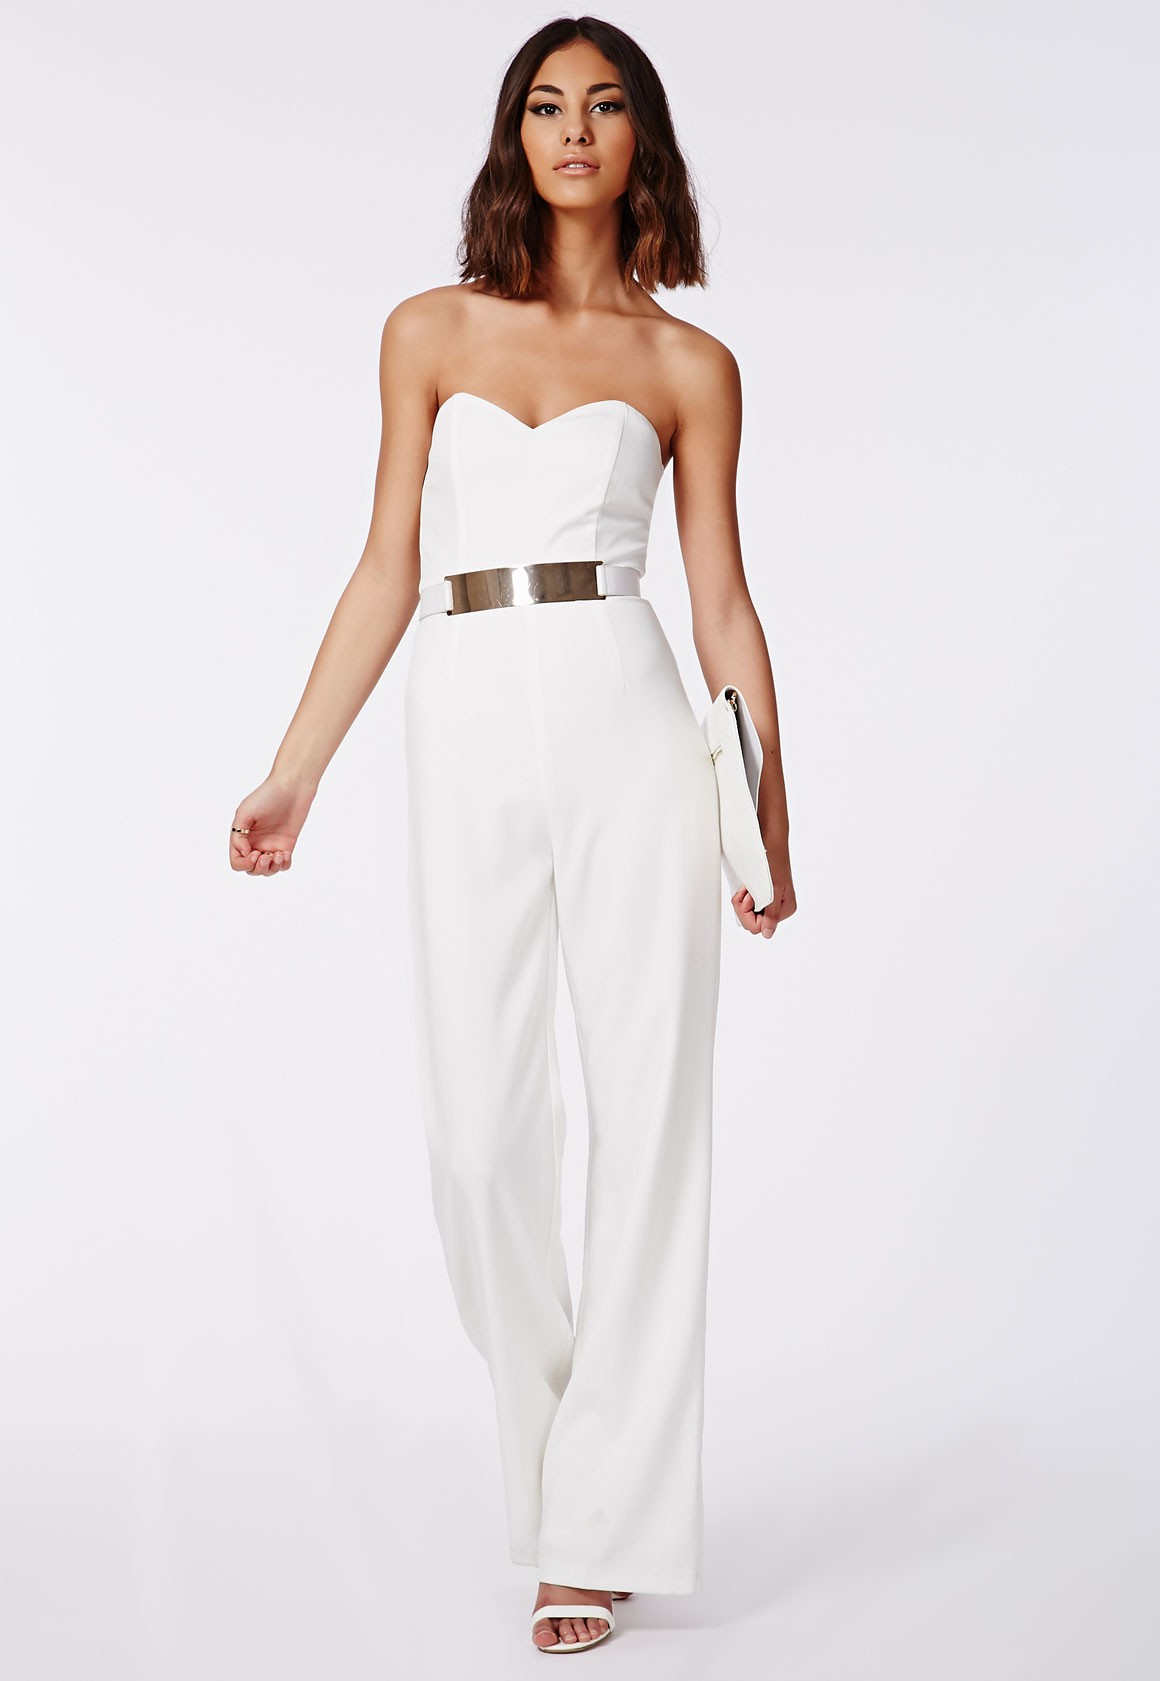 A hit of gold enhances the sleek lines of this jumpsuit.